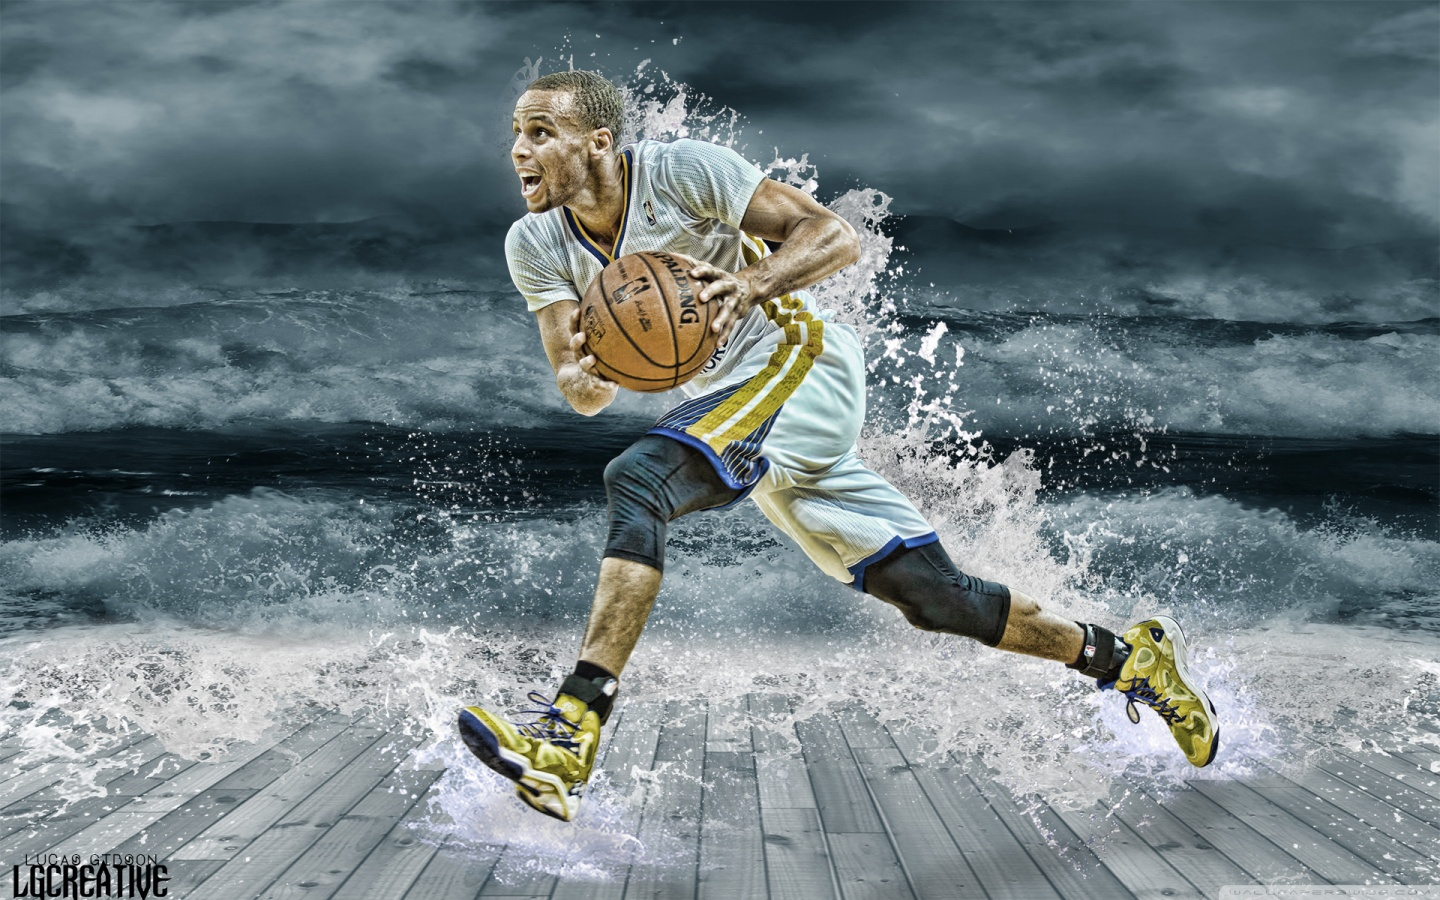 stephen curry wallpaper iphone 1440x900